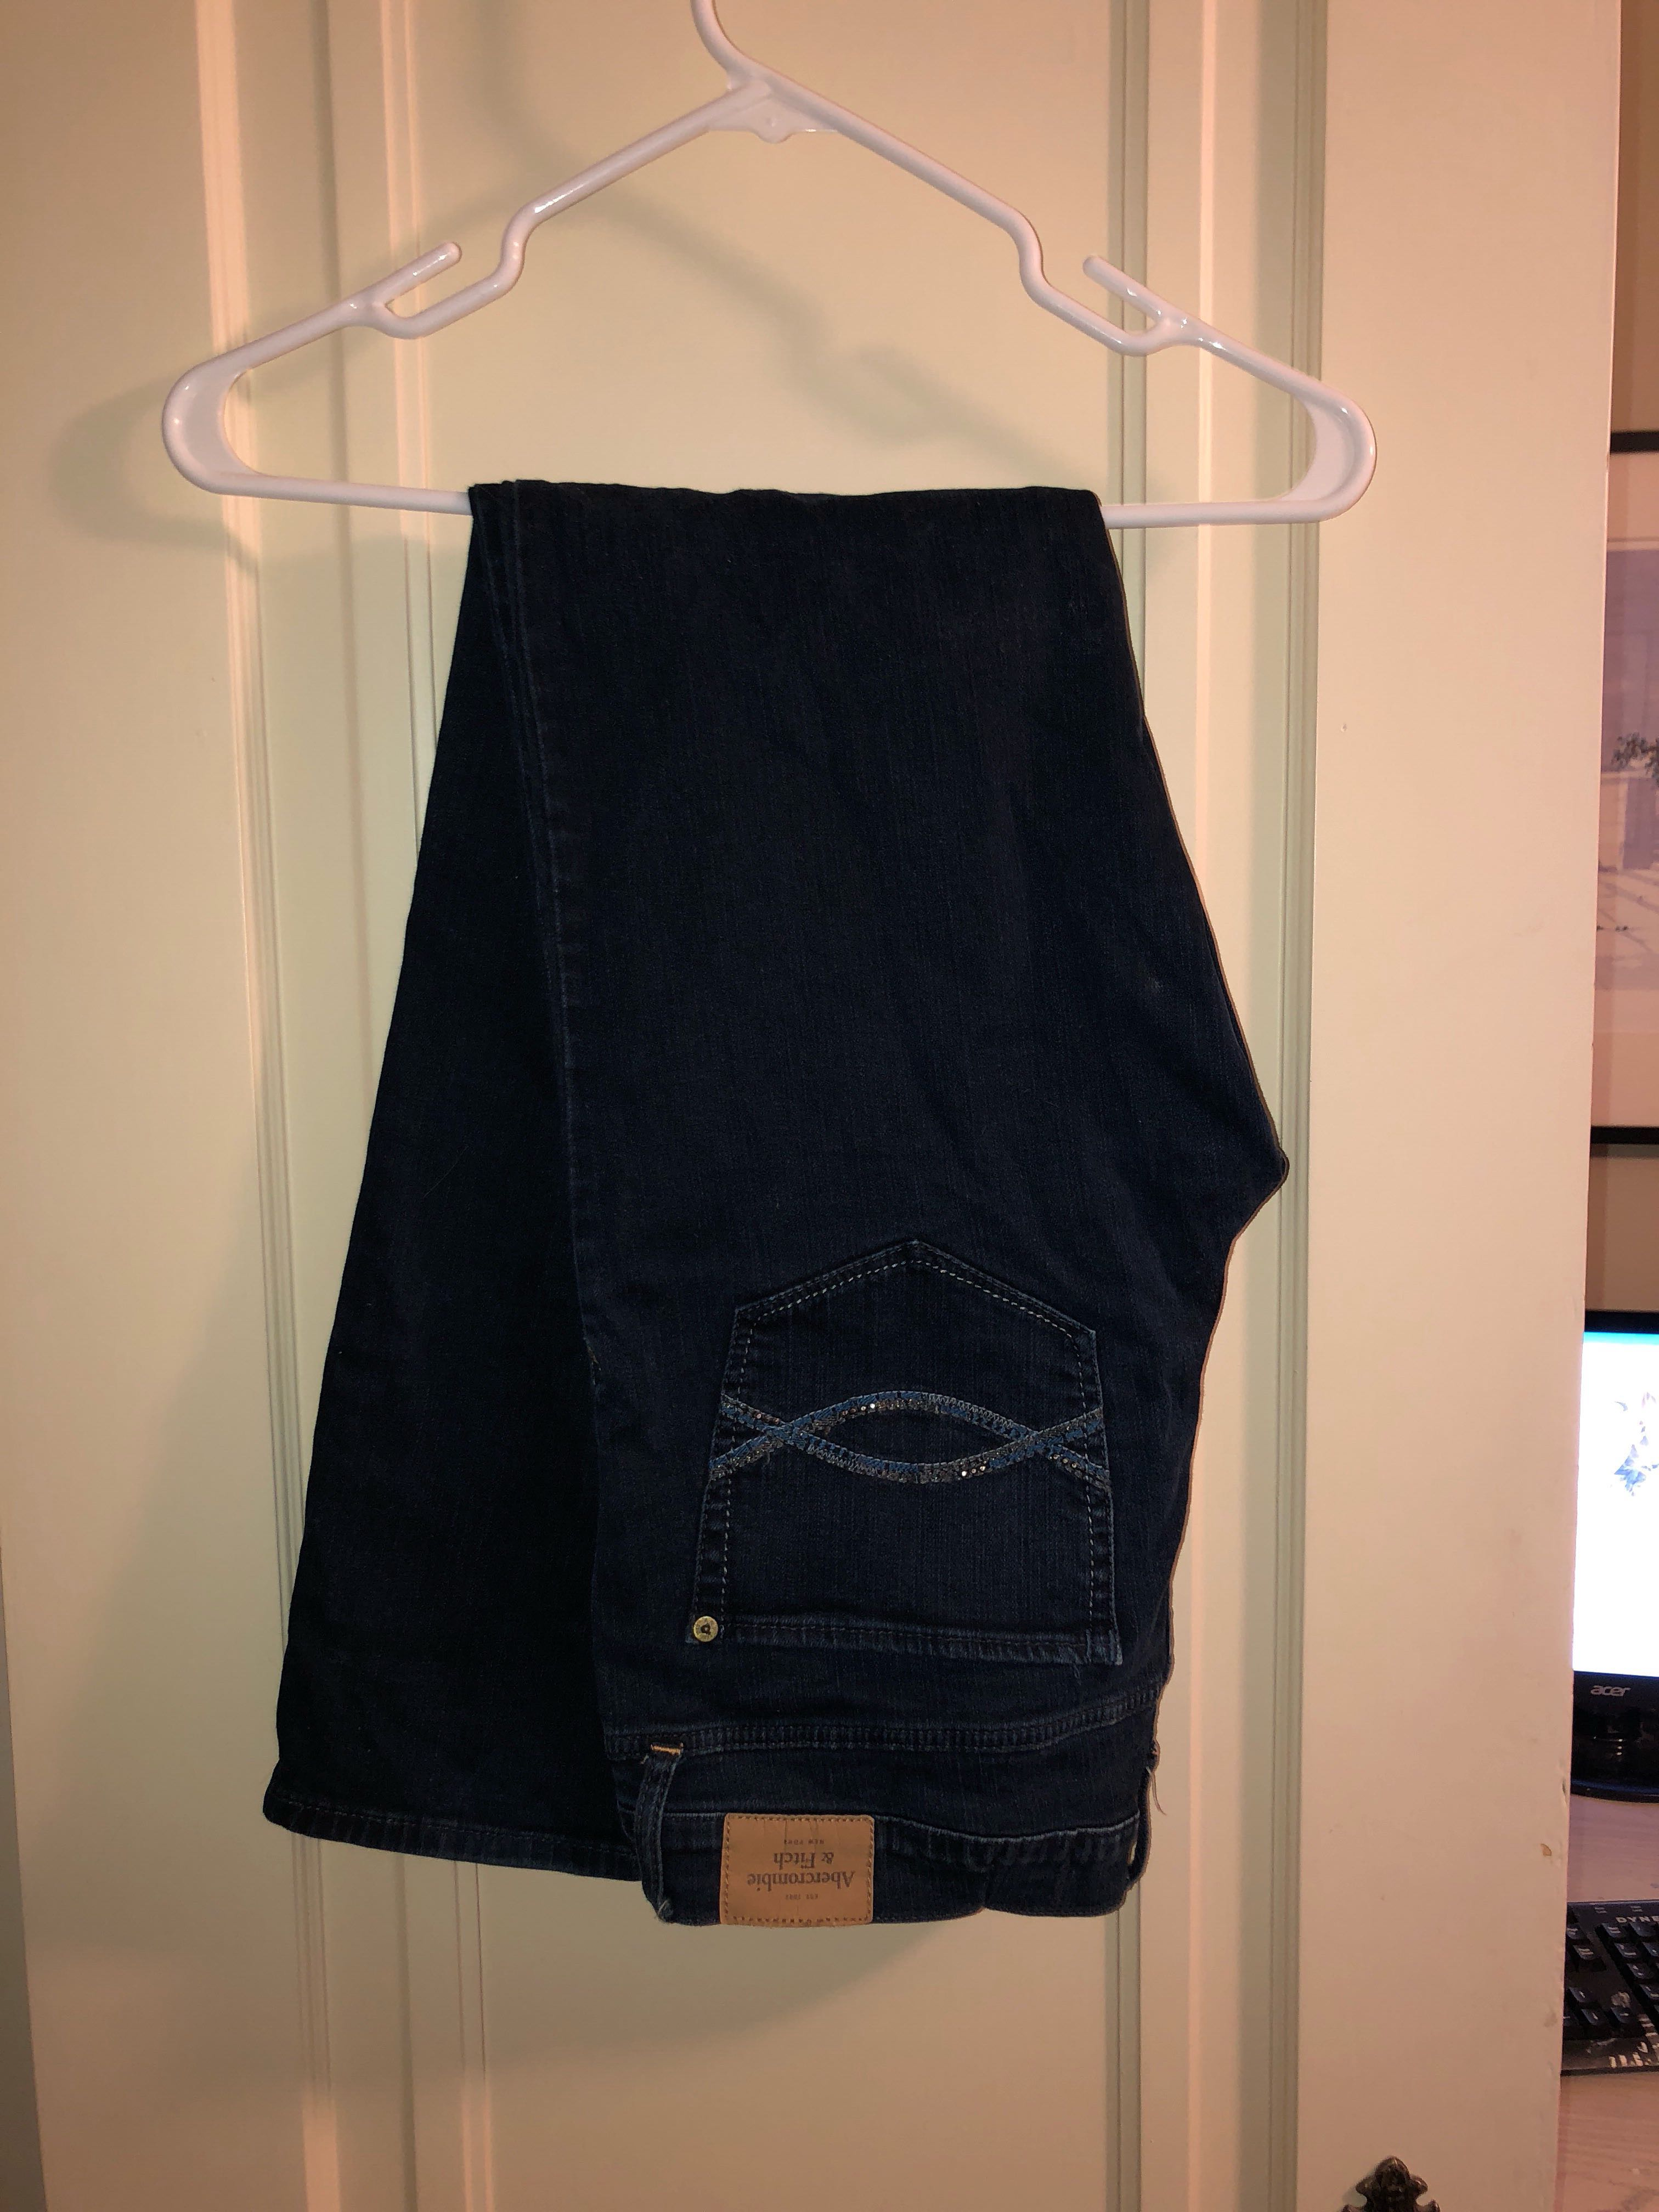 Jeans dark wash from Abercrombie & Fitch